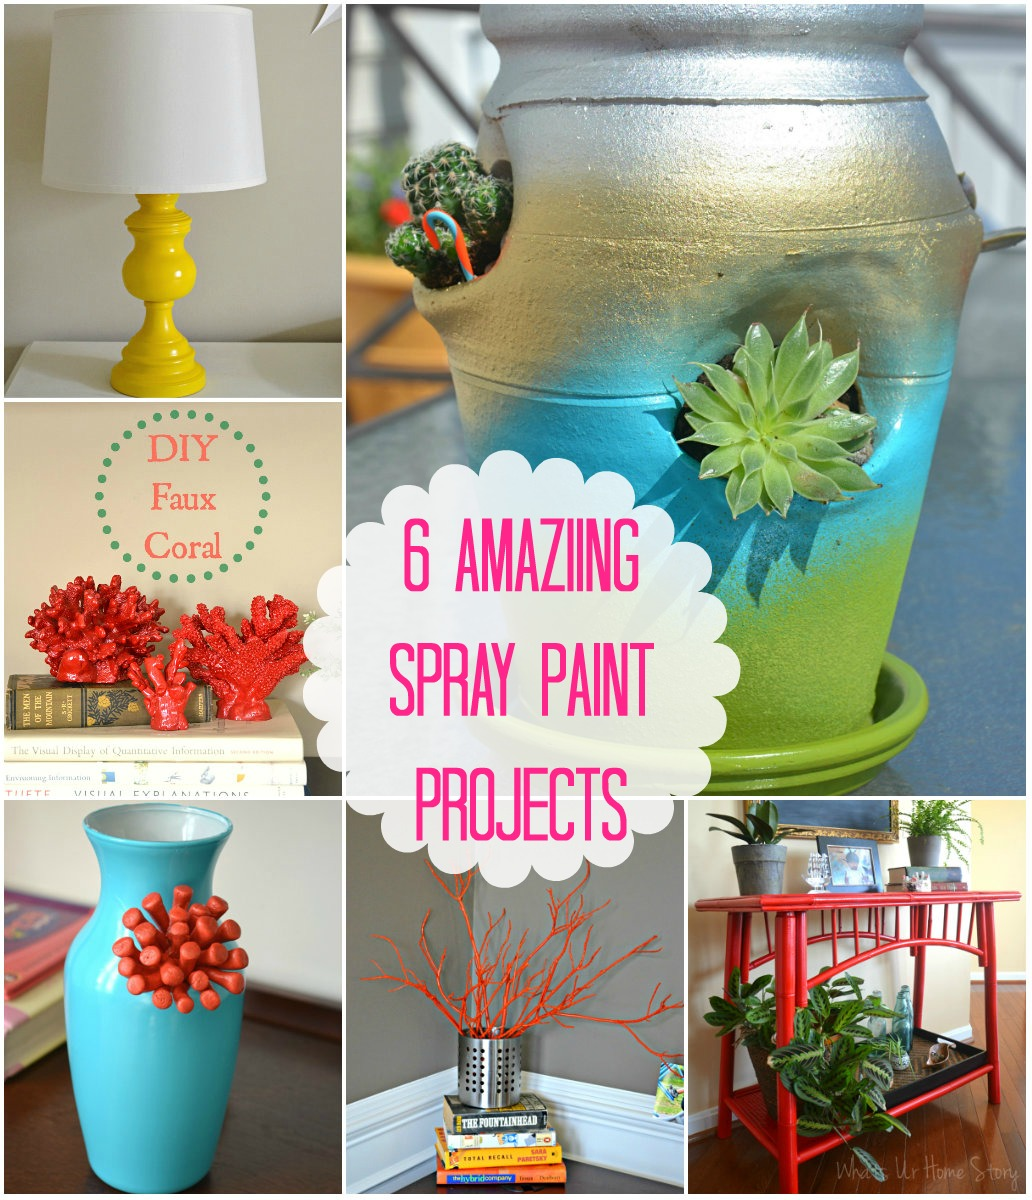 6 awesome spray paint projects